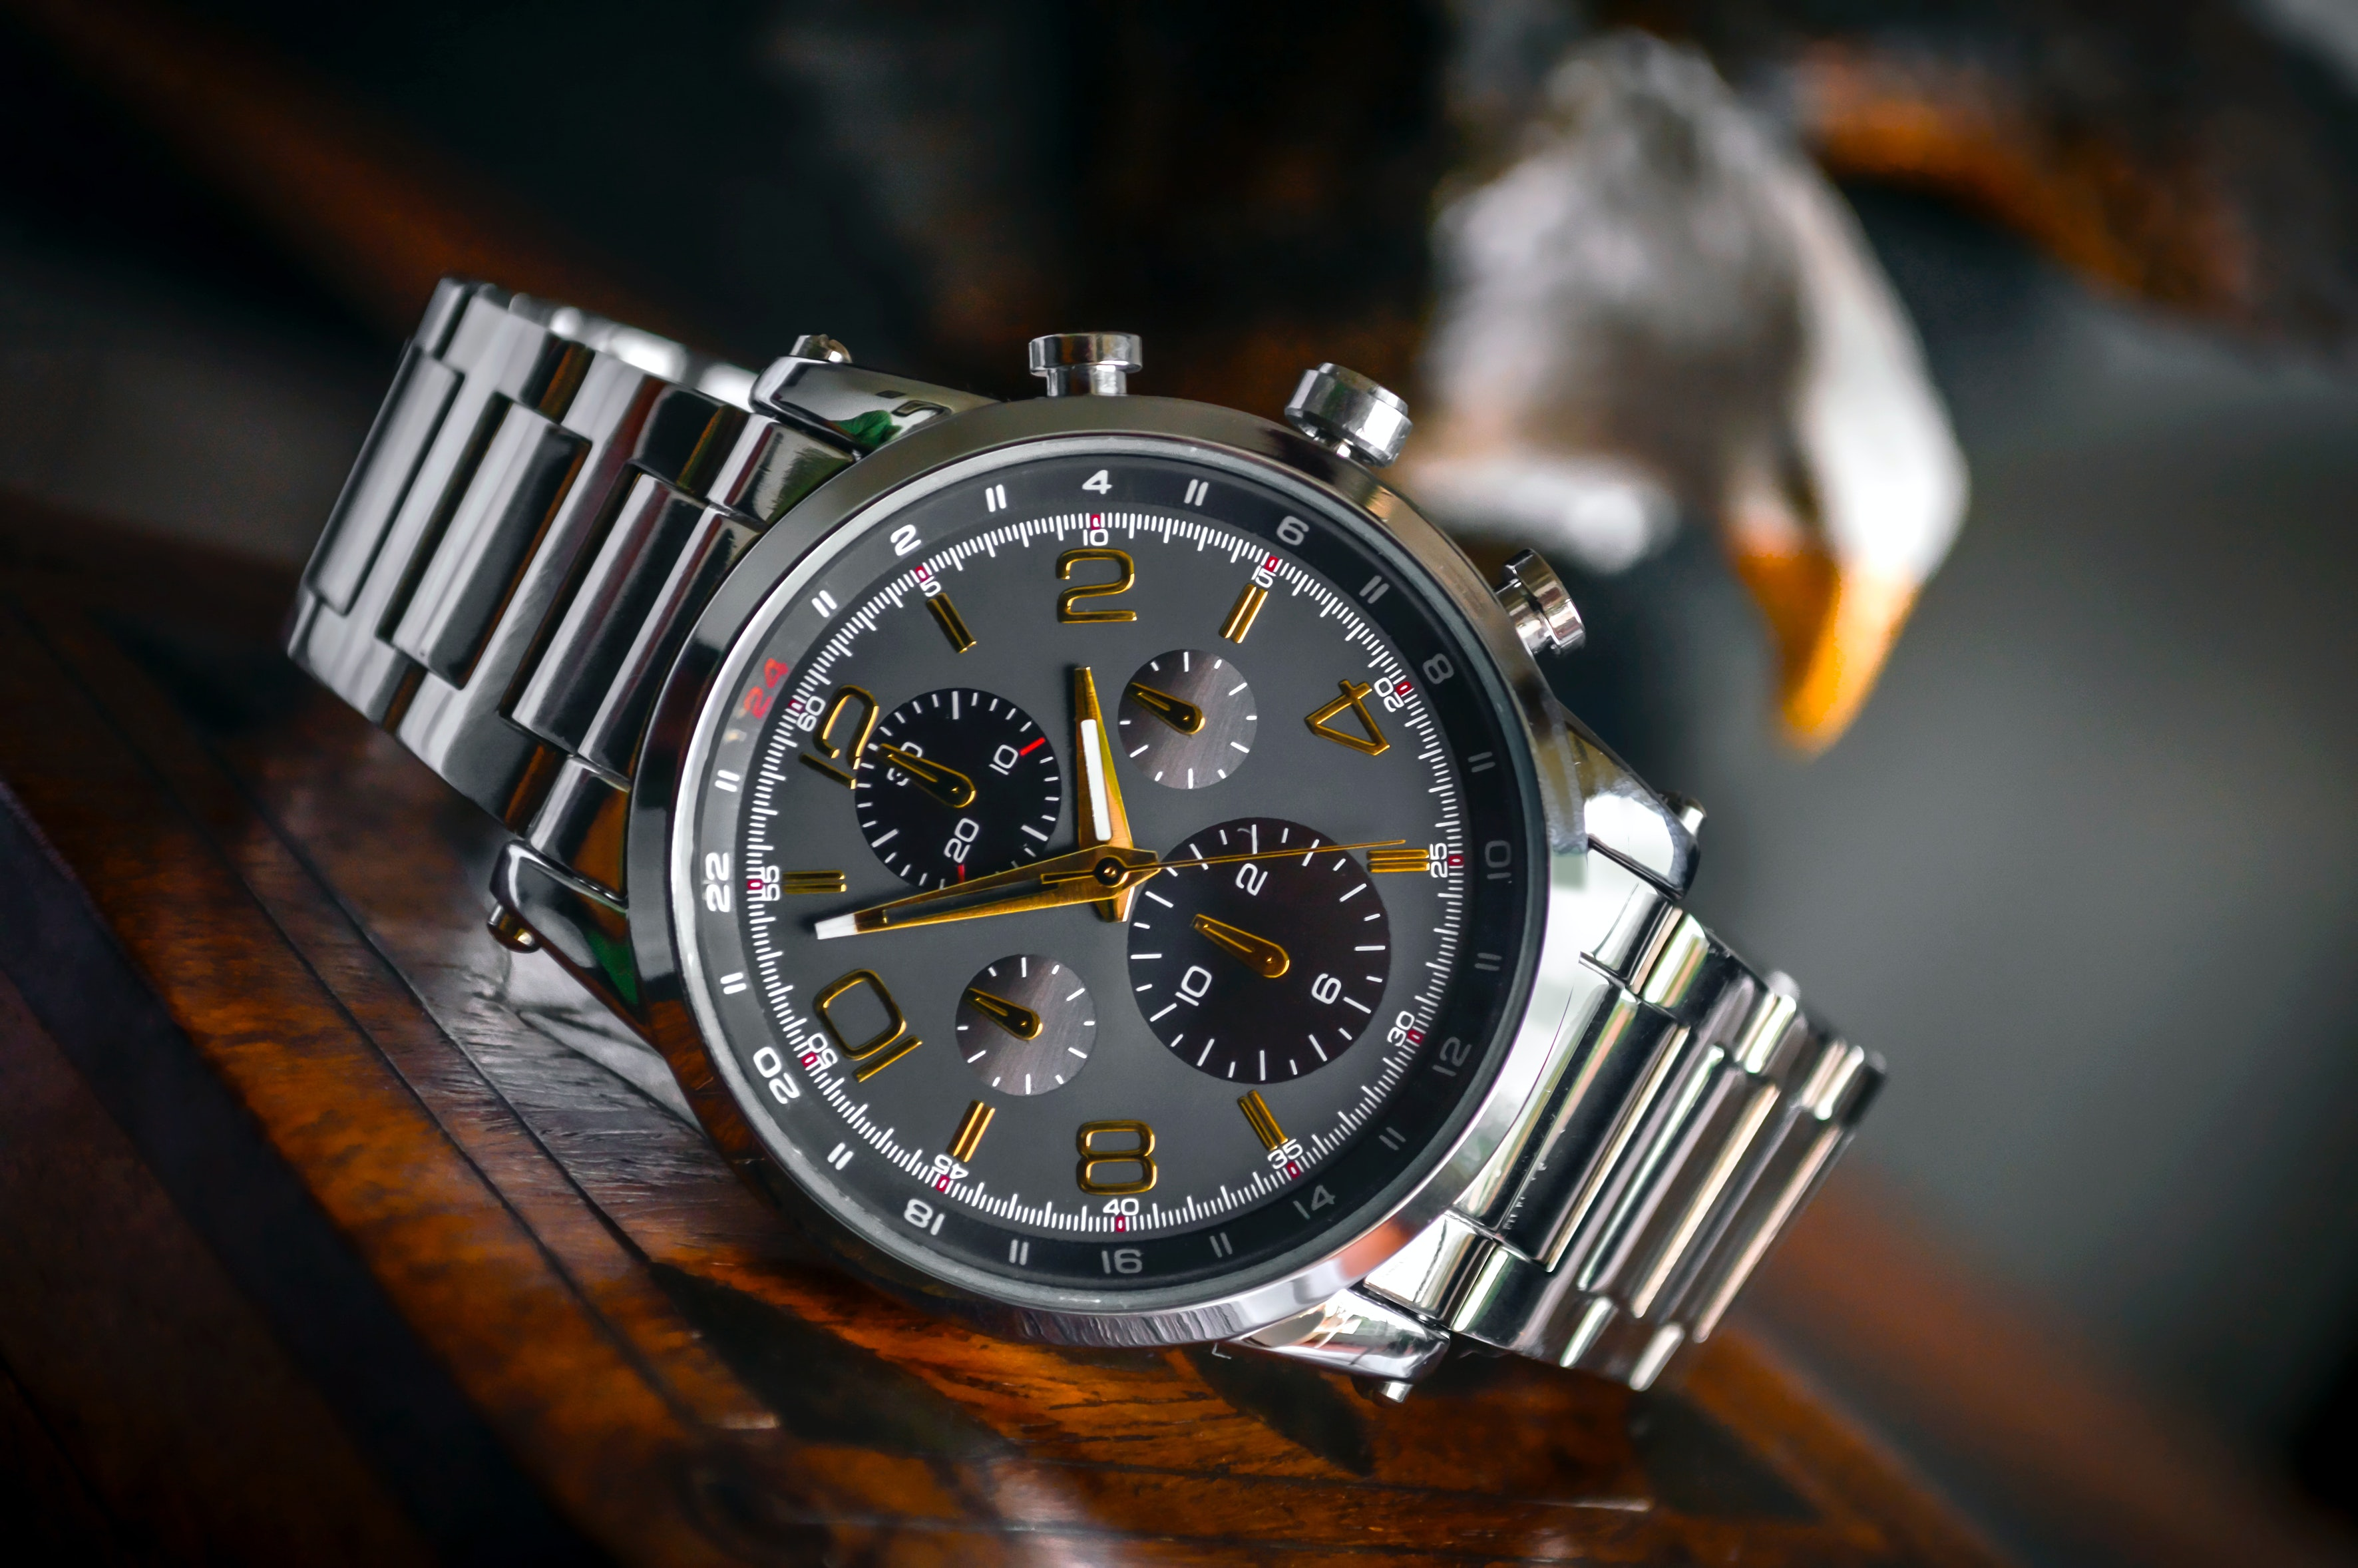 Tips on How to Take Care of Your Luxury Watches